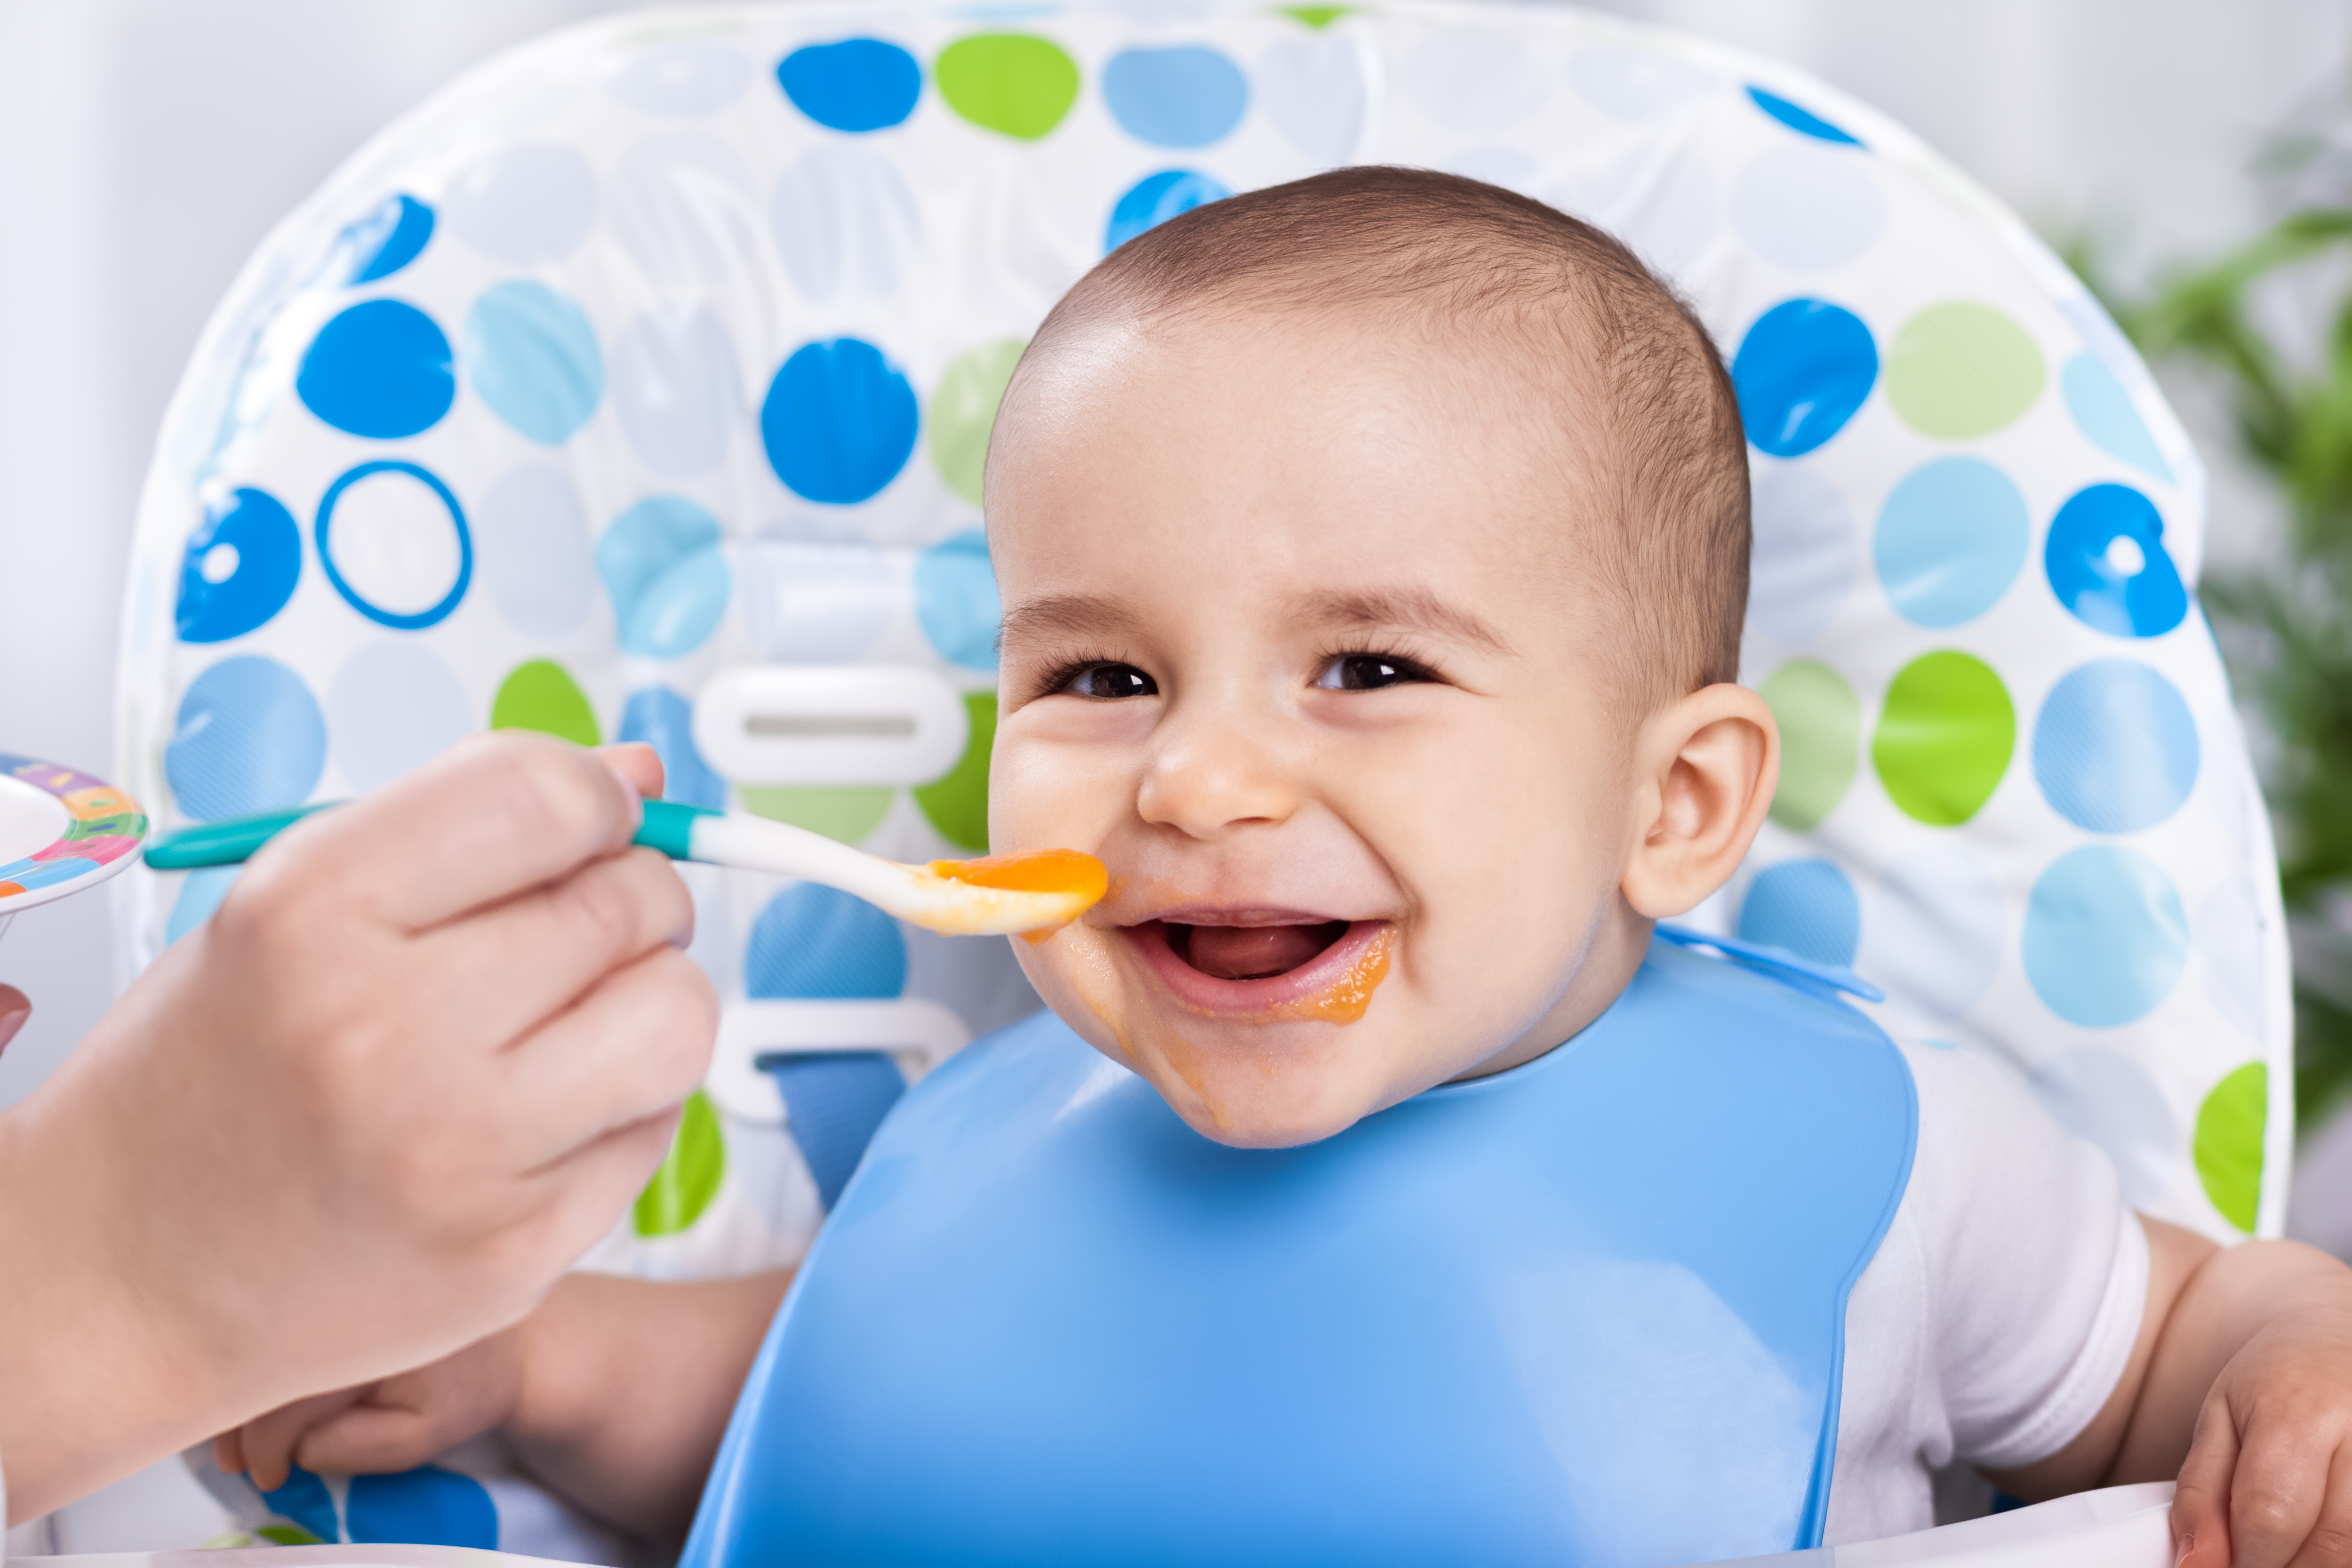 Meal delivery subscription services are all the rage, and now there's an organic one for babies.